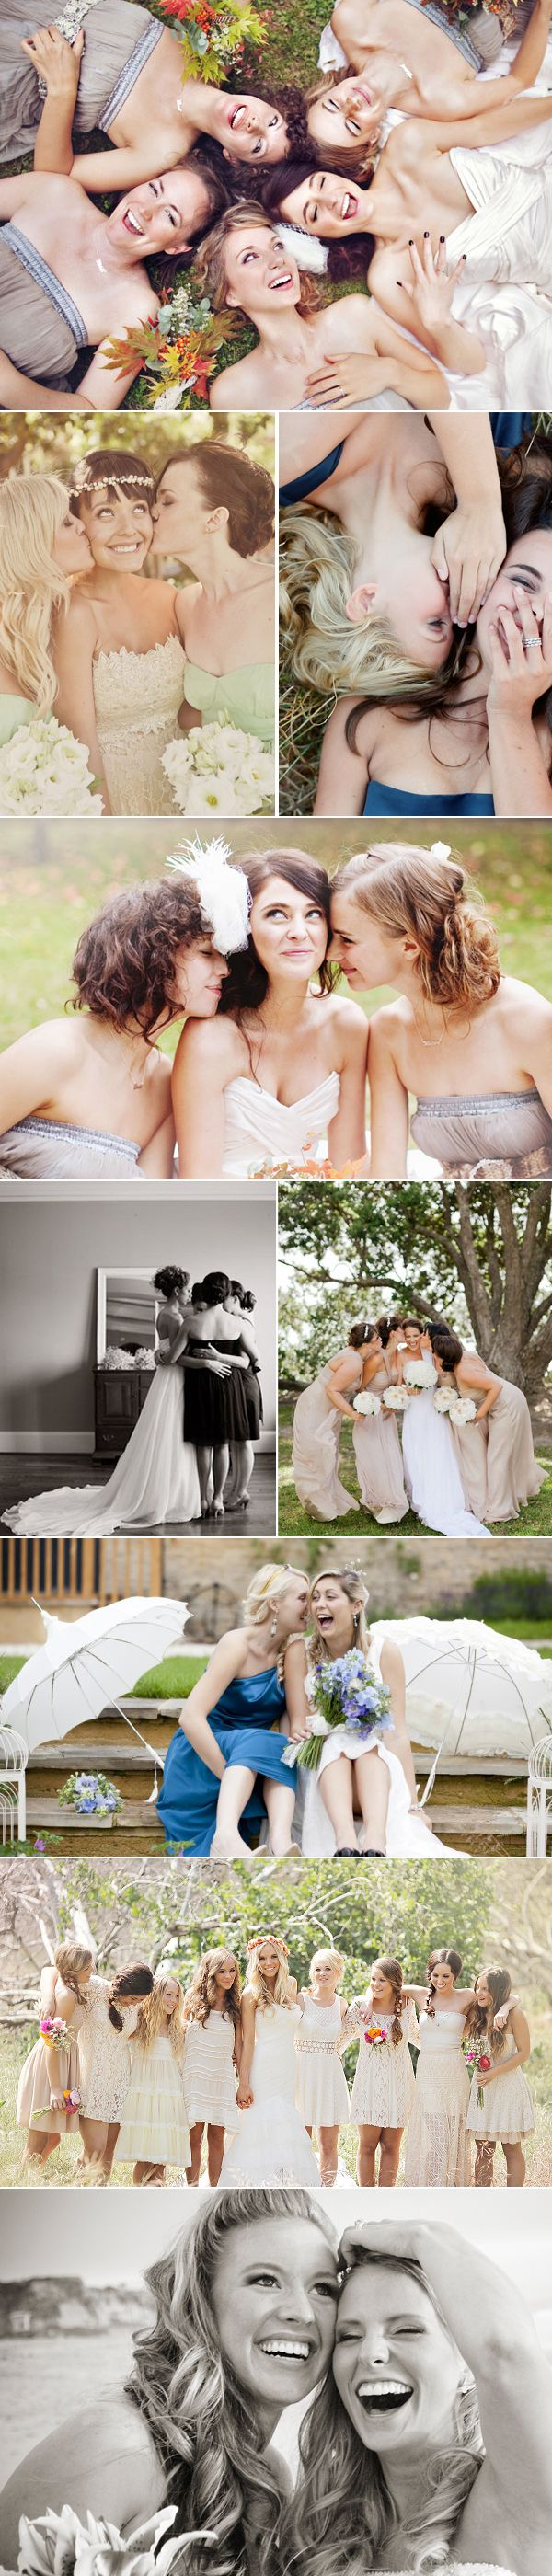 Lots of posed and natural looking bridesmaid shots pre wedding. Or sister pics